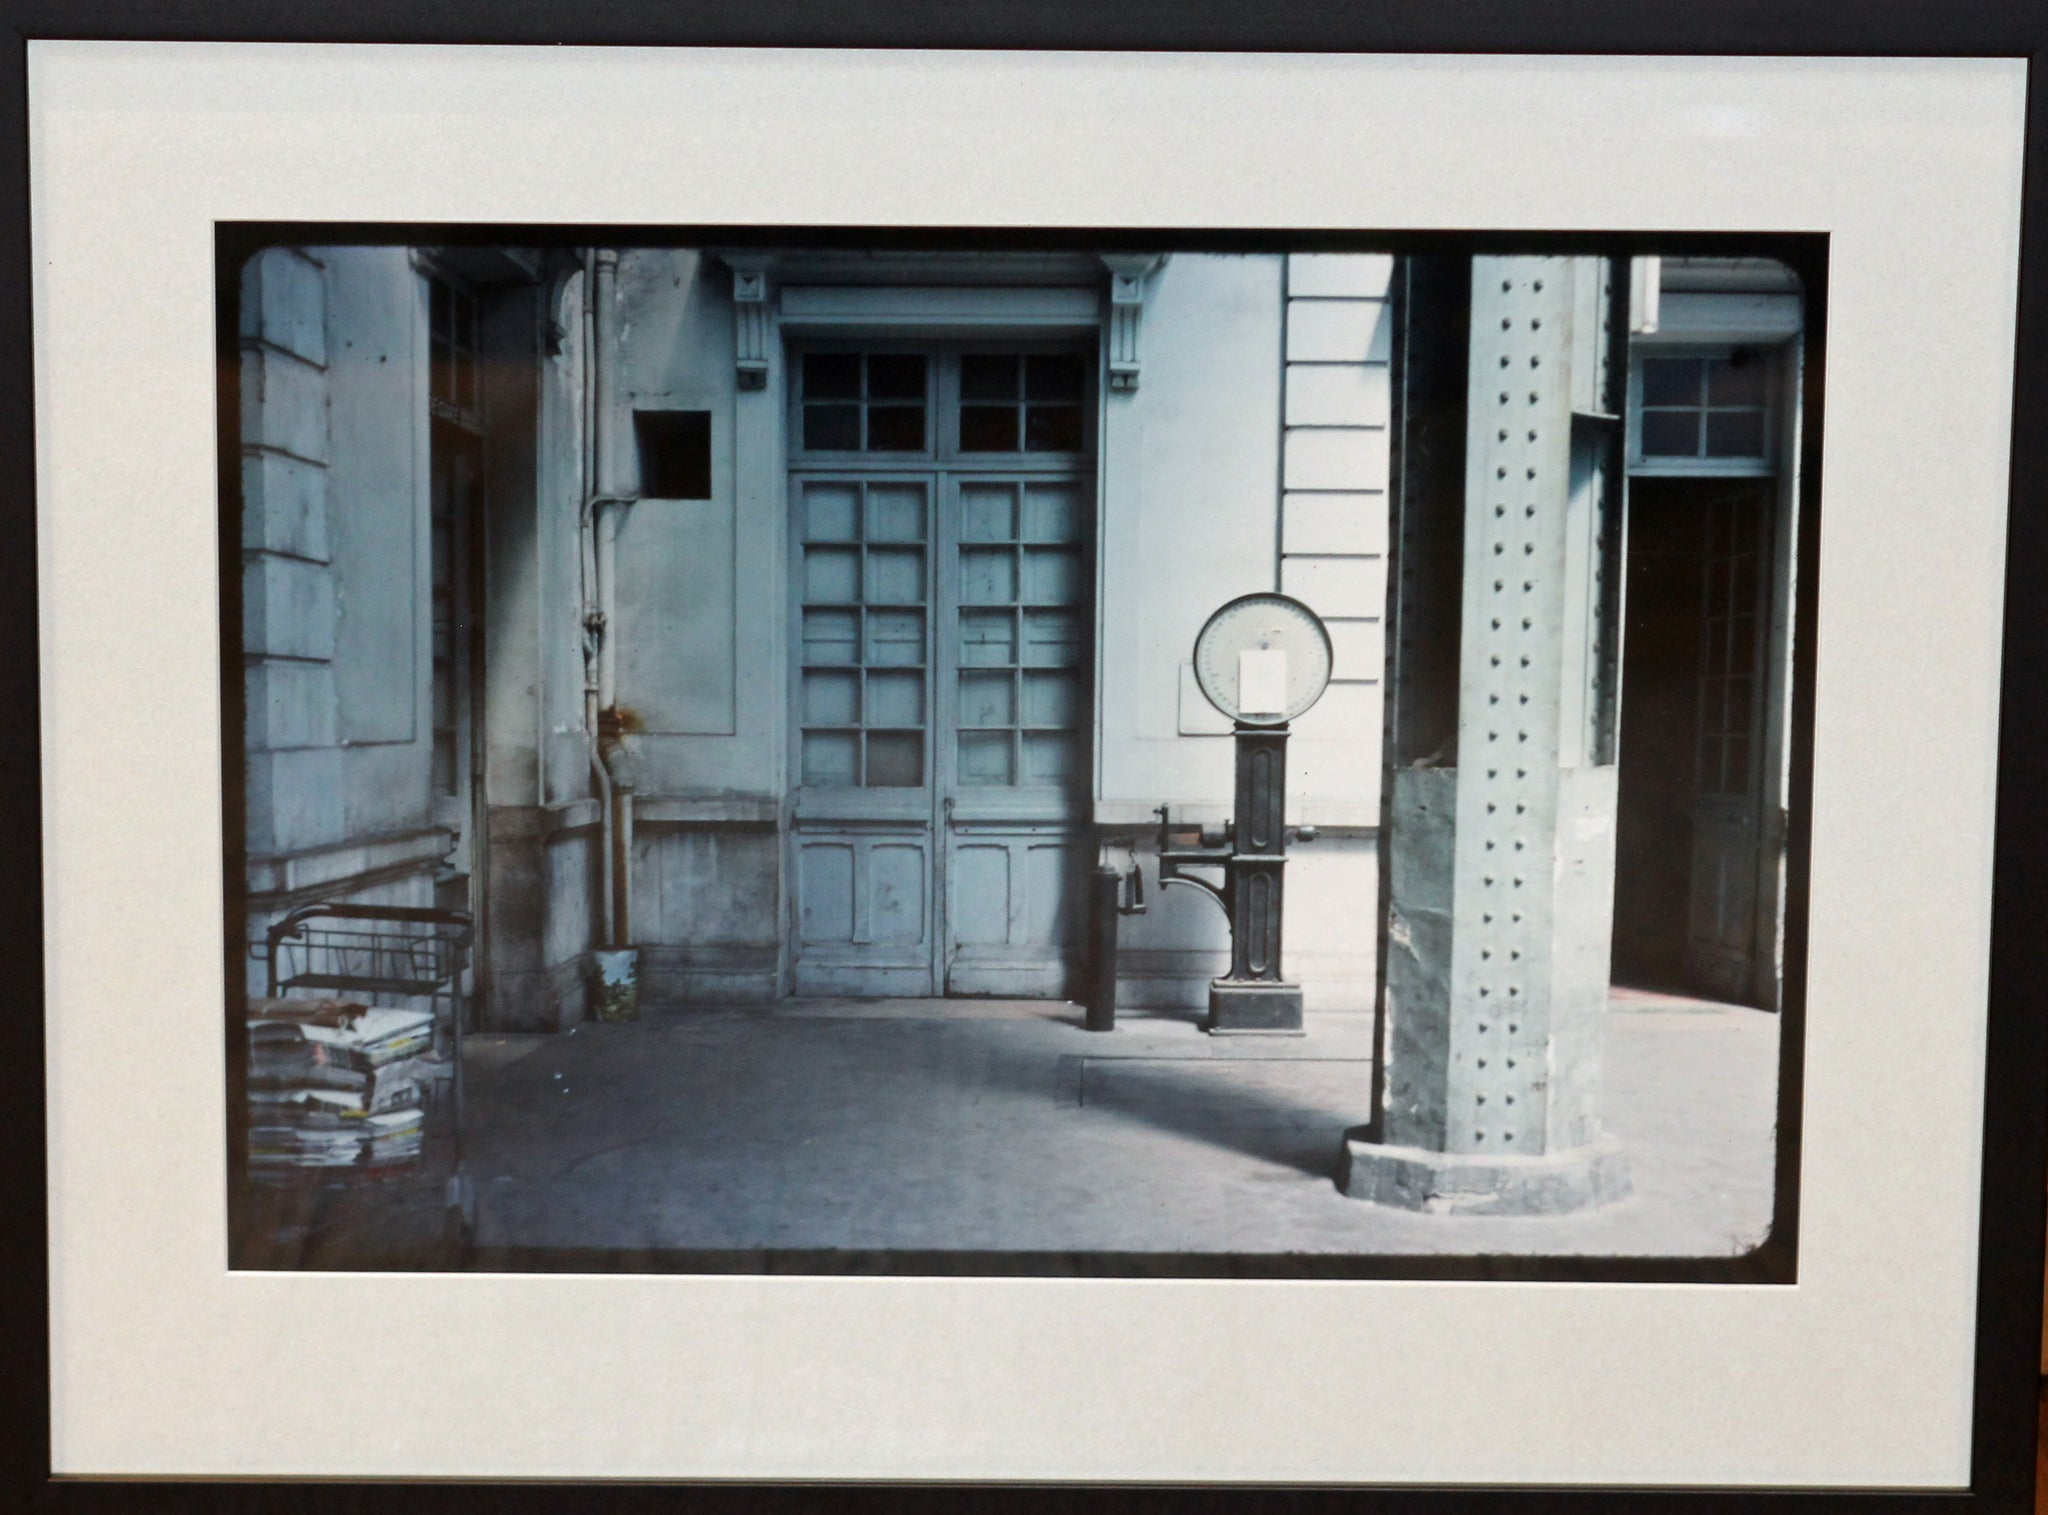 Original Photograph by Jeff Deleuse, SOLD